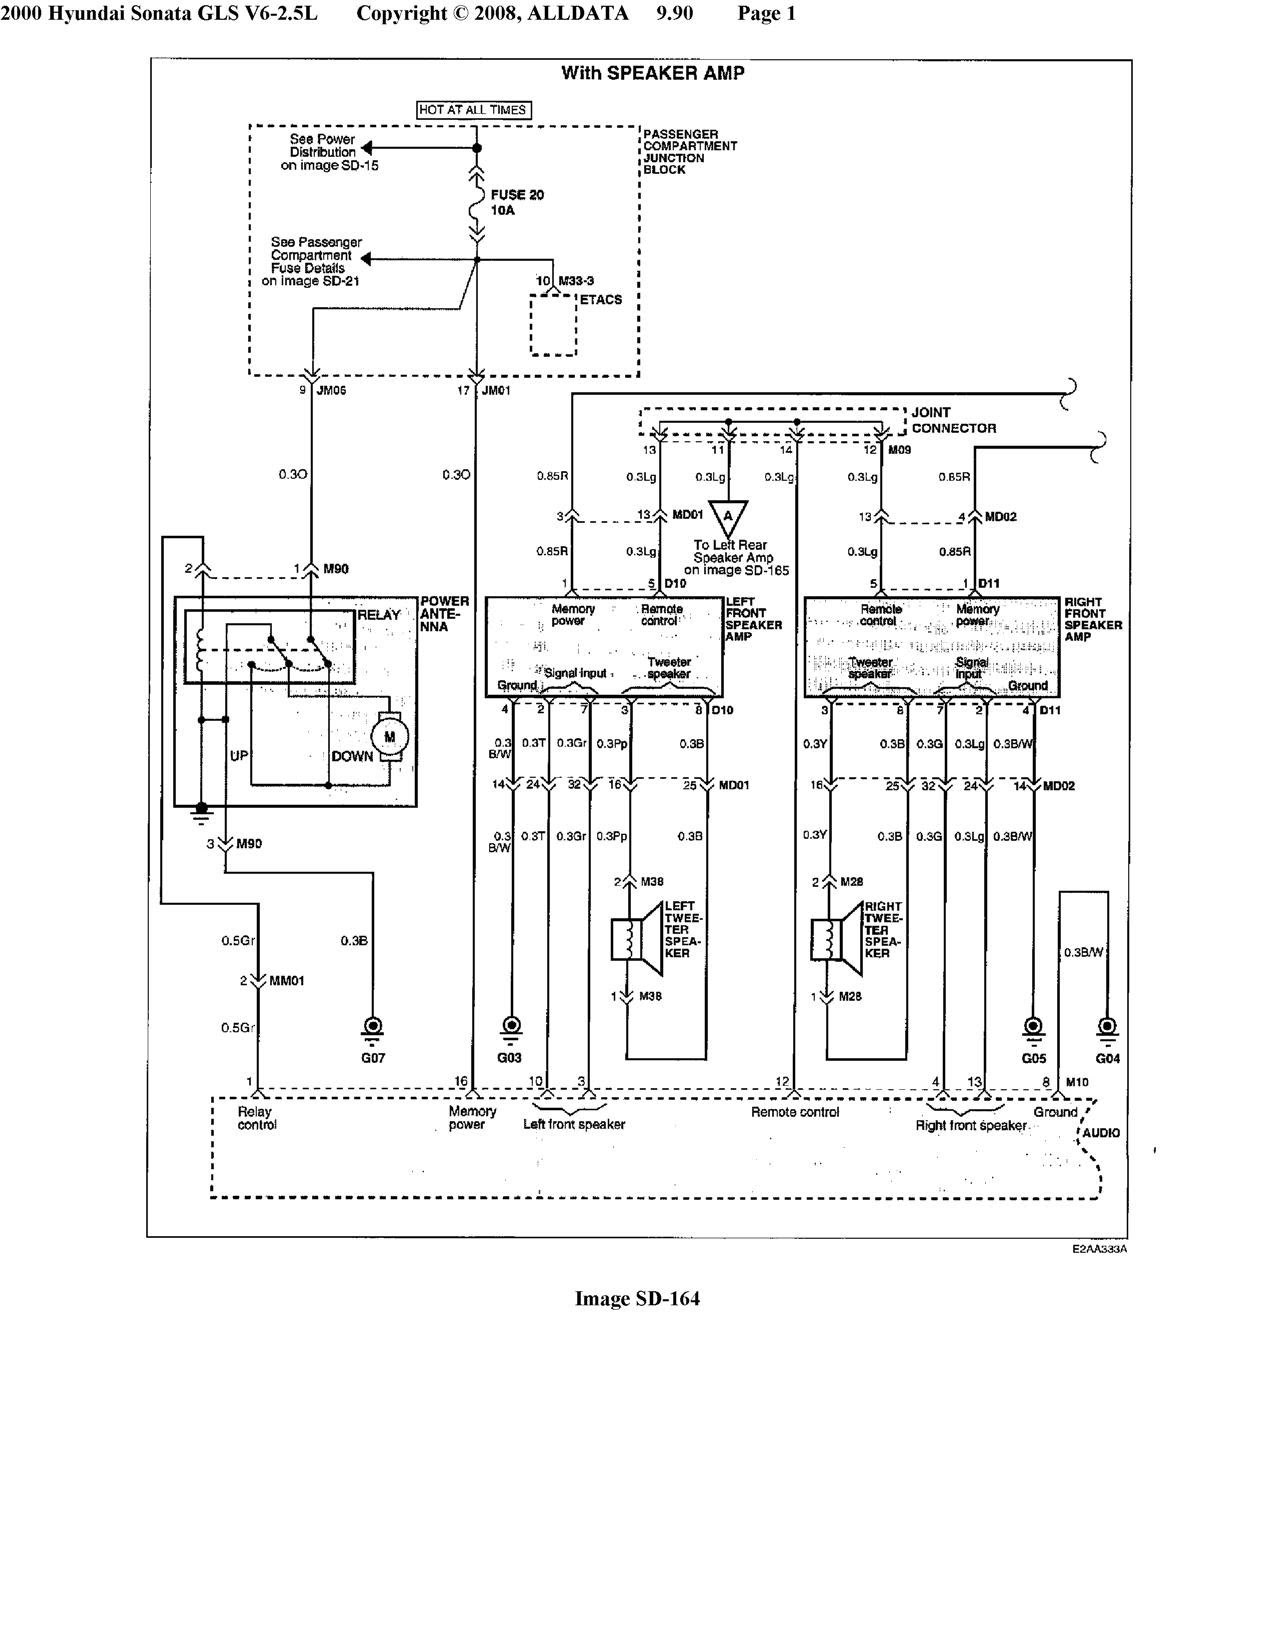 2005 Hyundai Sonata Wiring Diagram Wiring Diagram Local2 Local2 Maceratadoc It